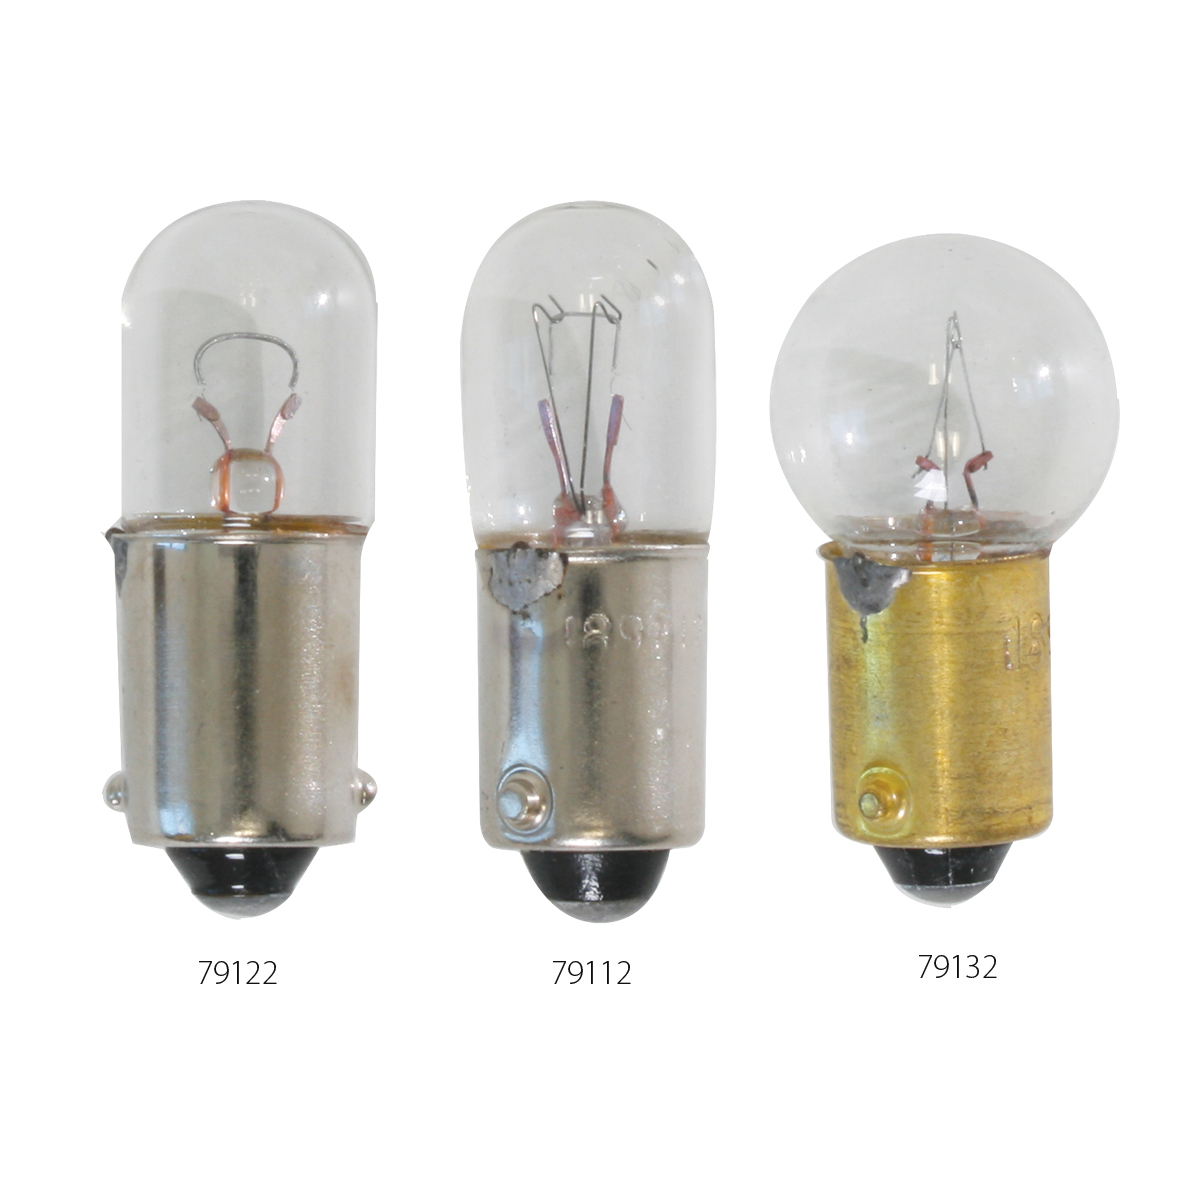 #1893/ #1891/ #1895 Miniature Replacement Light Bulbs